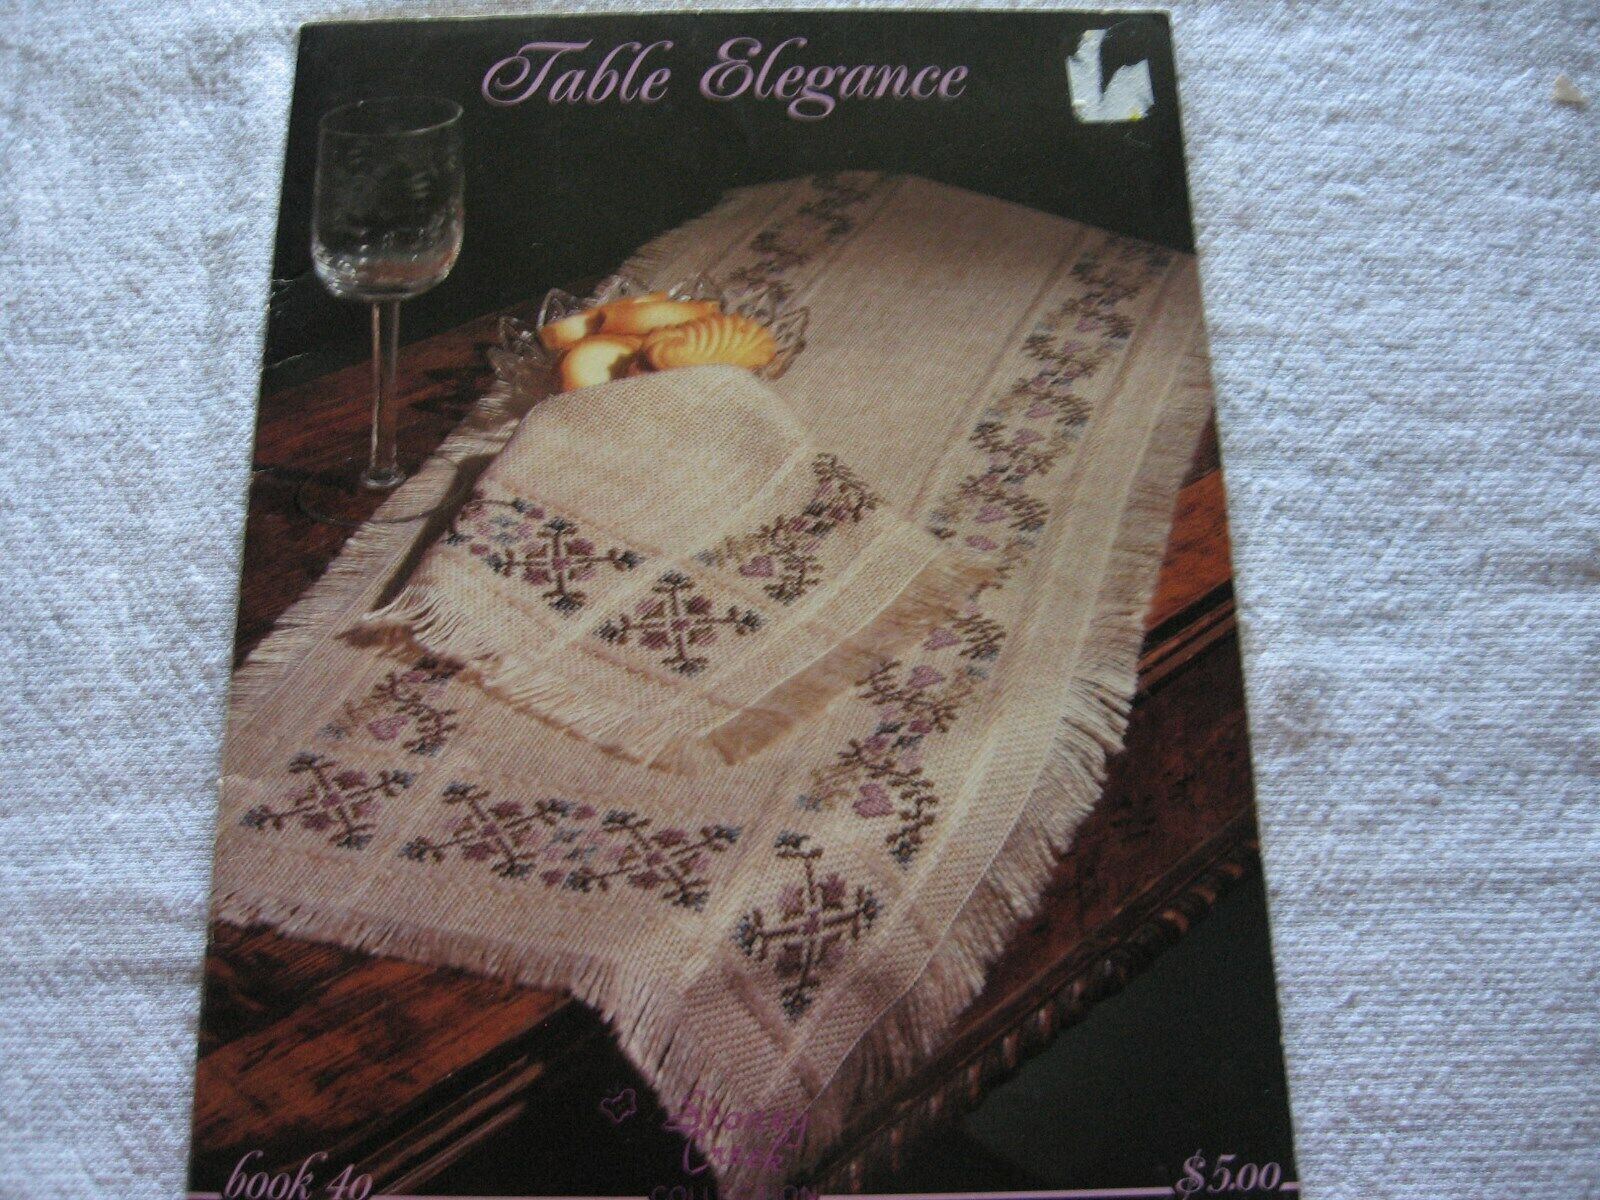 Table Elegance Cross Stitch Pattern Booklet - Book 40 - $2.75